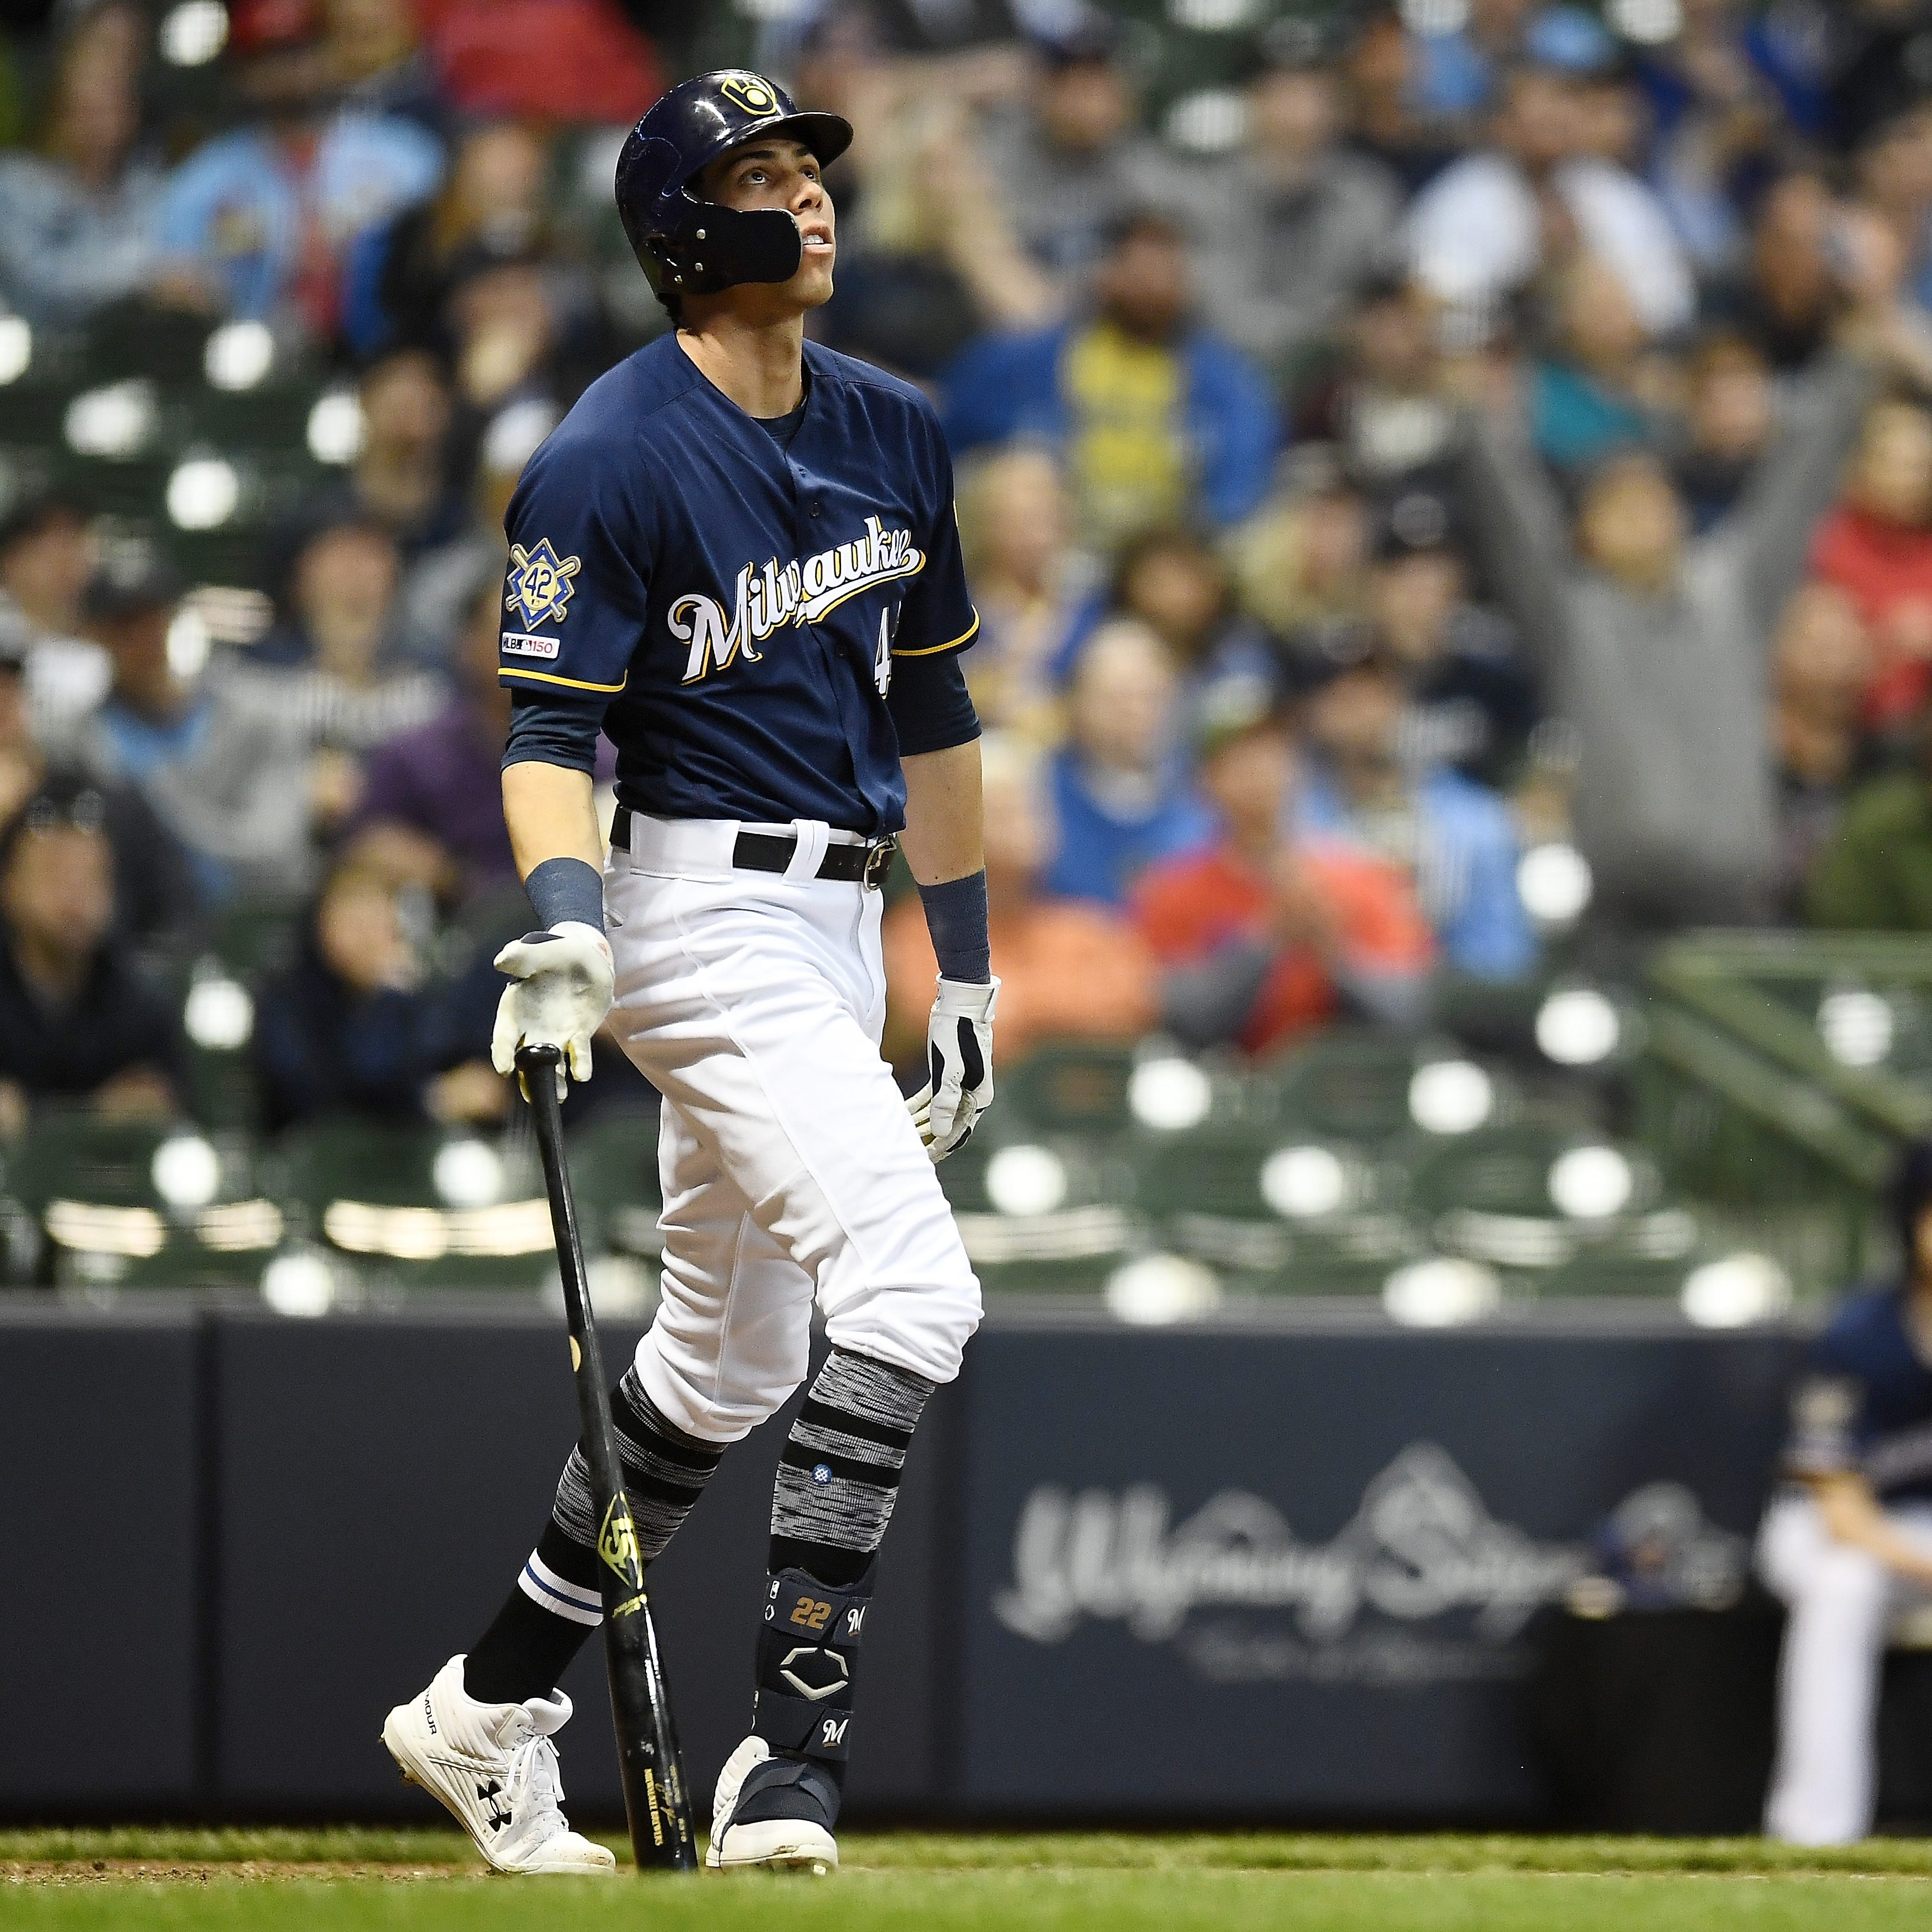 Early work pays immediate dividends for Christian Yelich as he homers three times